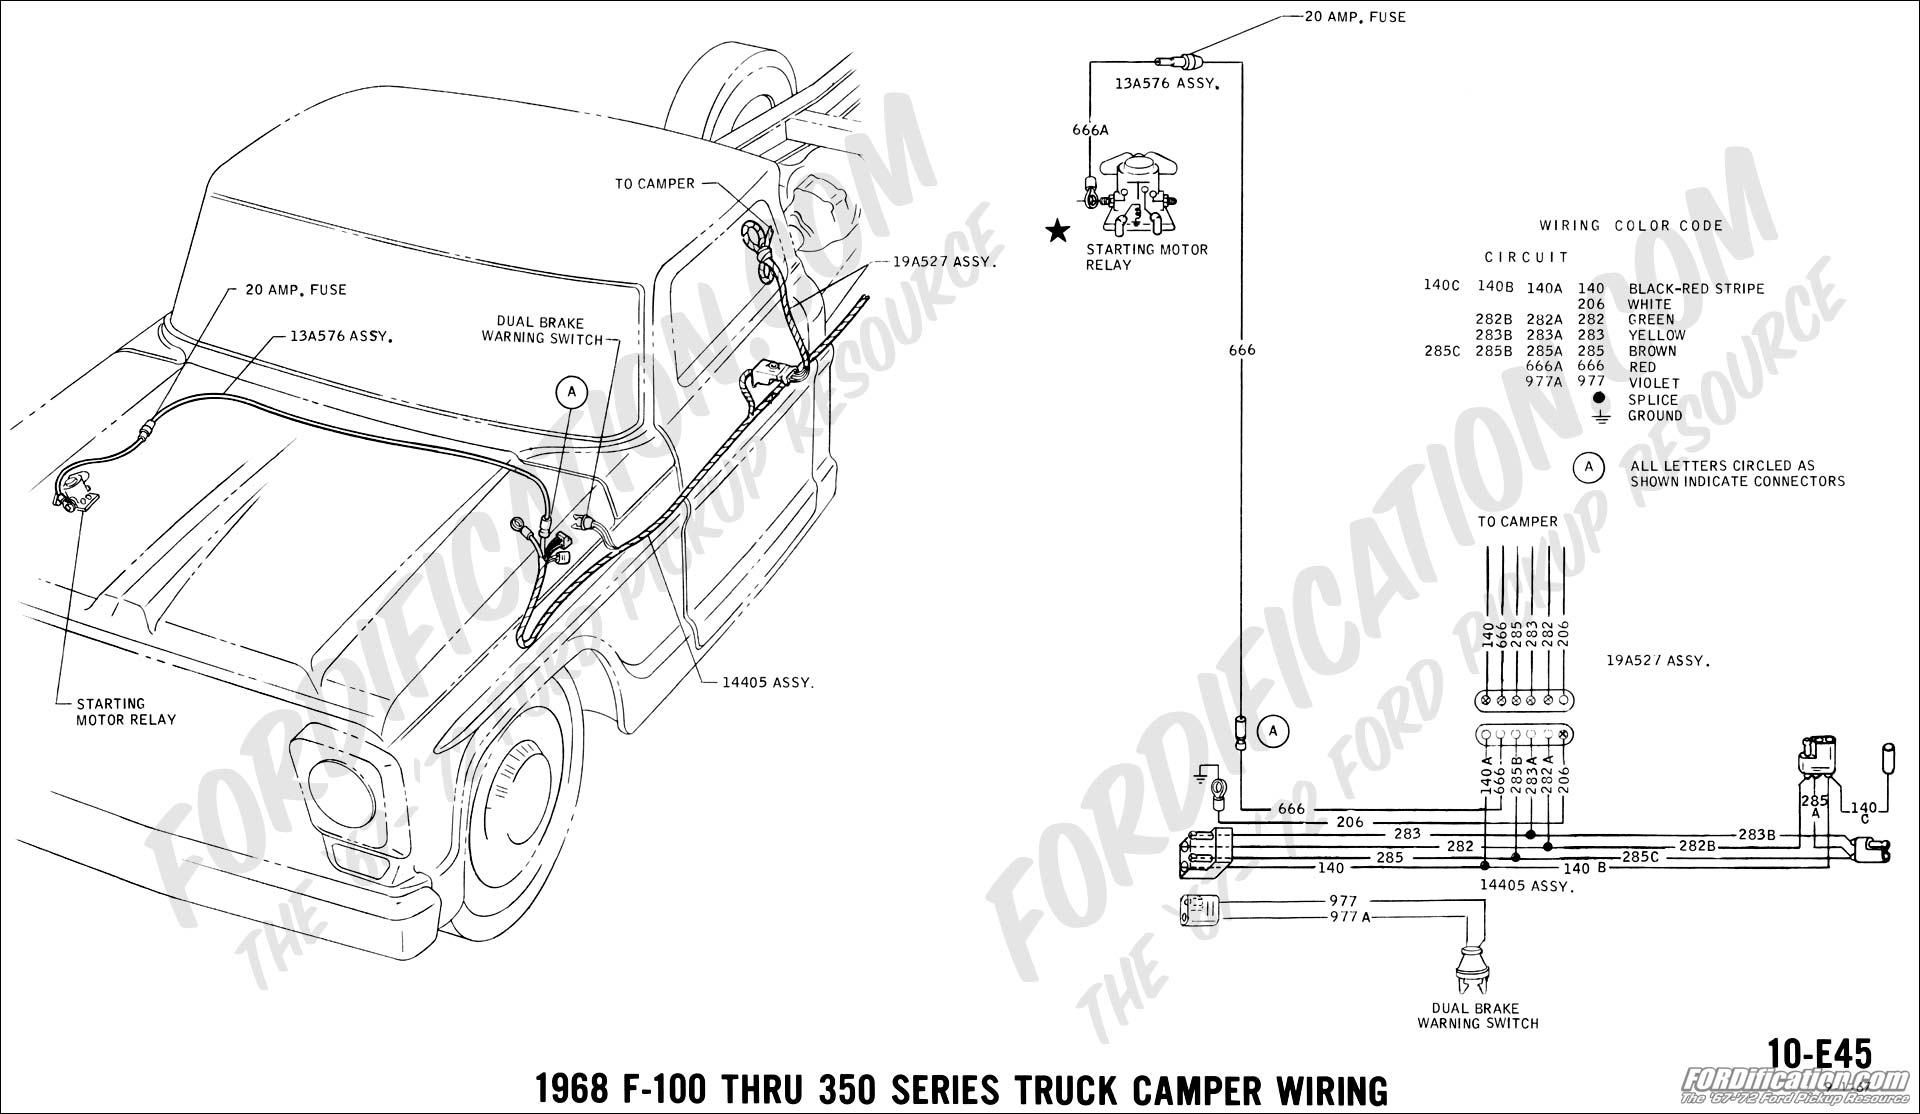 68 47 ford truck technical drawings and schematics section h wiring truck camper wiring diagram at alyssarenee.co